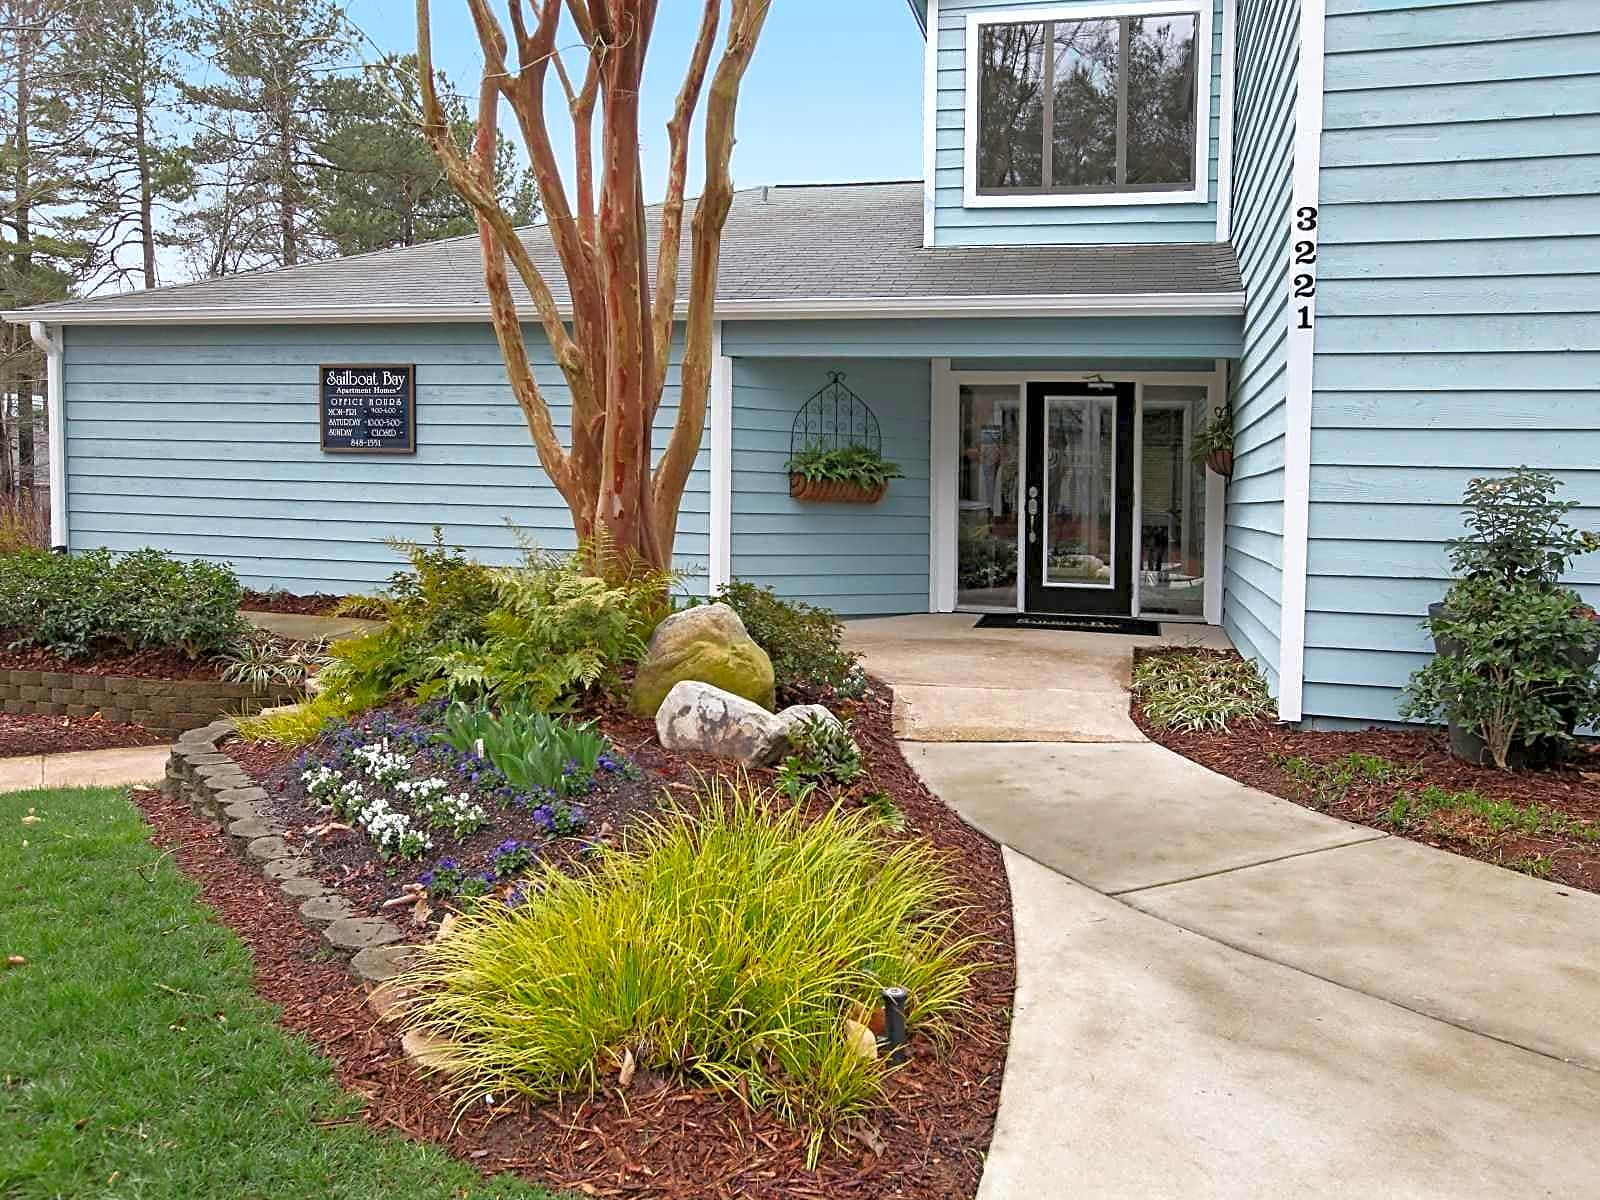 Photo: Raleigh Apartment for Rent - $670.00 / month; 1 Bd & 1 Ba